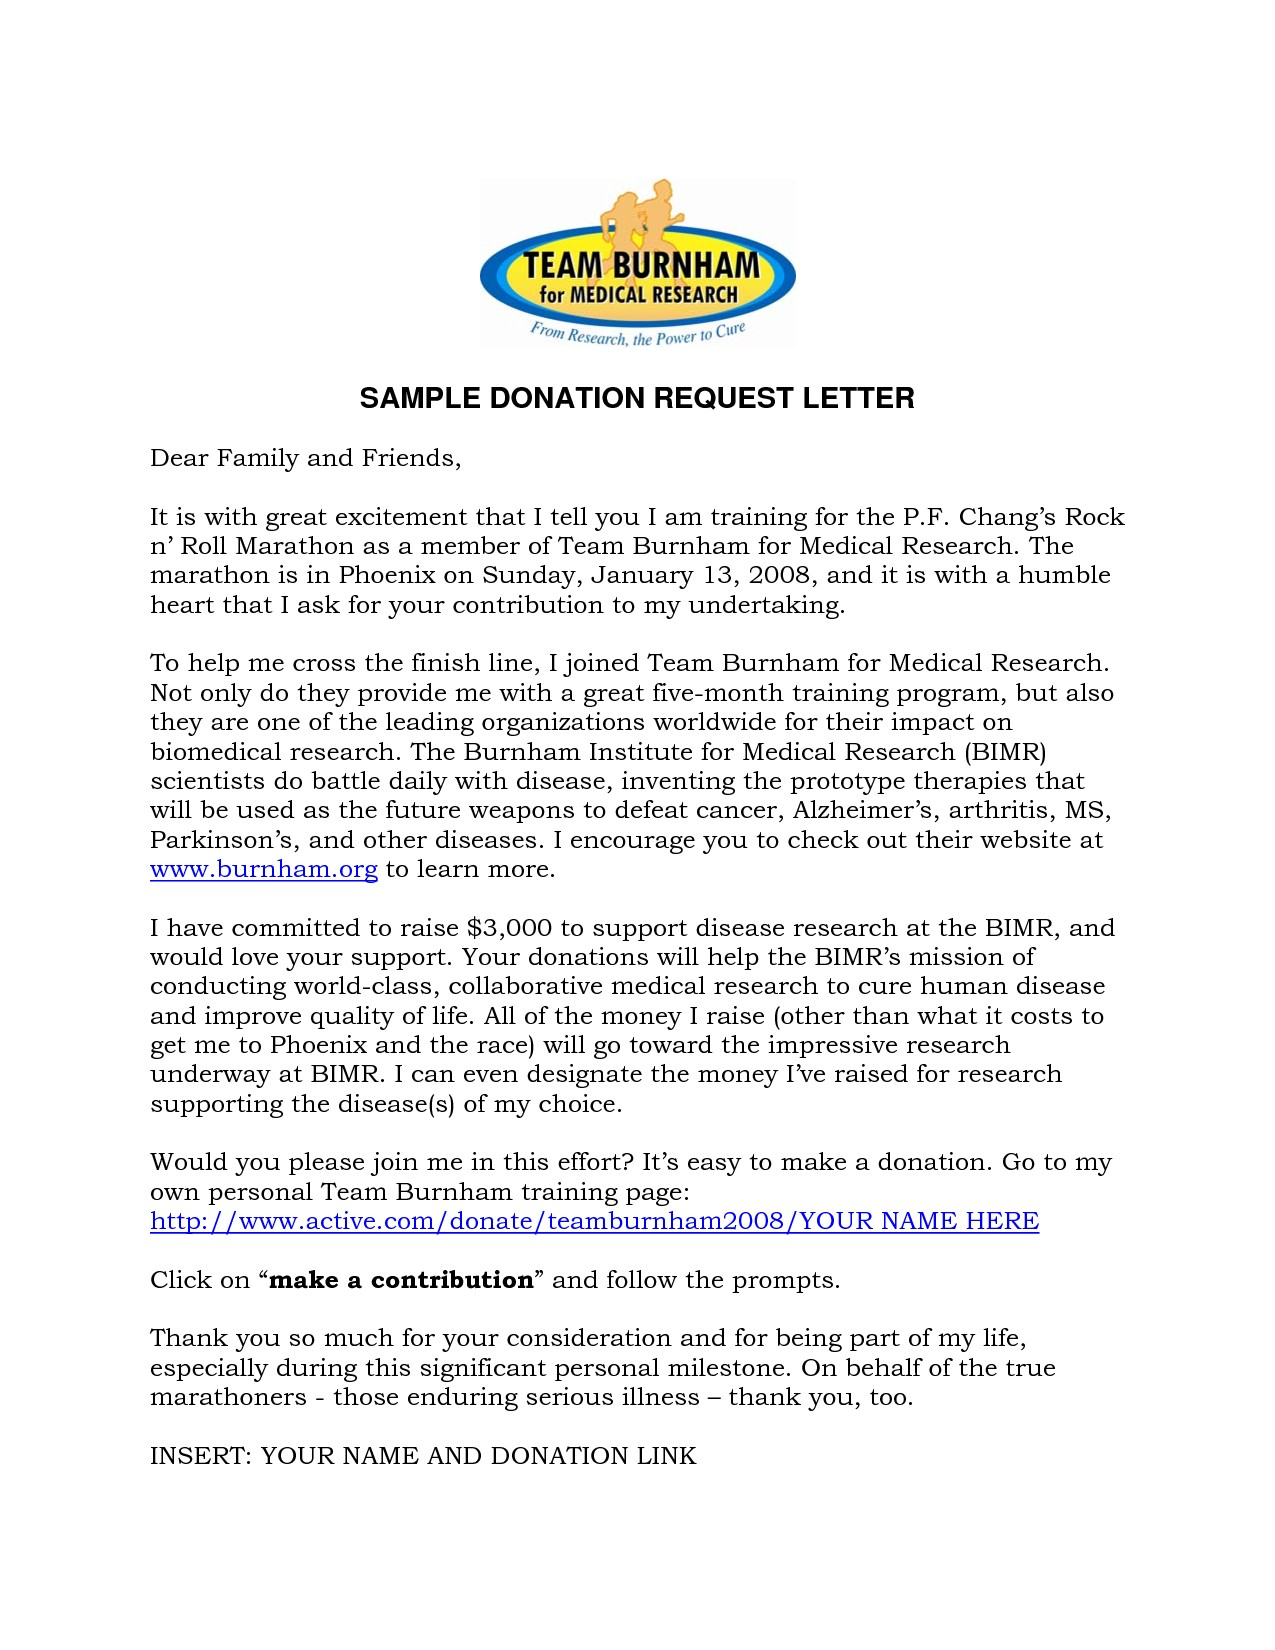 Food Donation Letter Template - Letter Sample Request for Donation Copy Donation Request Letter